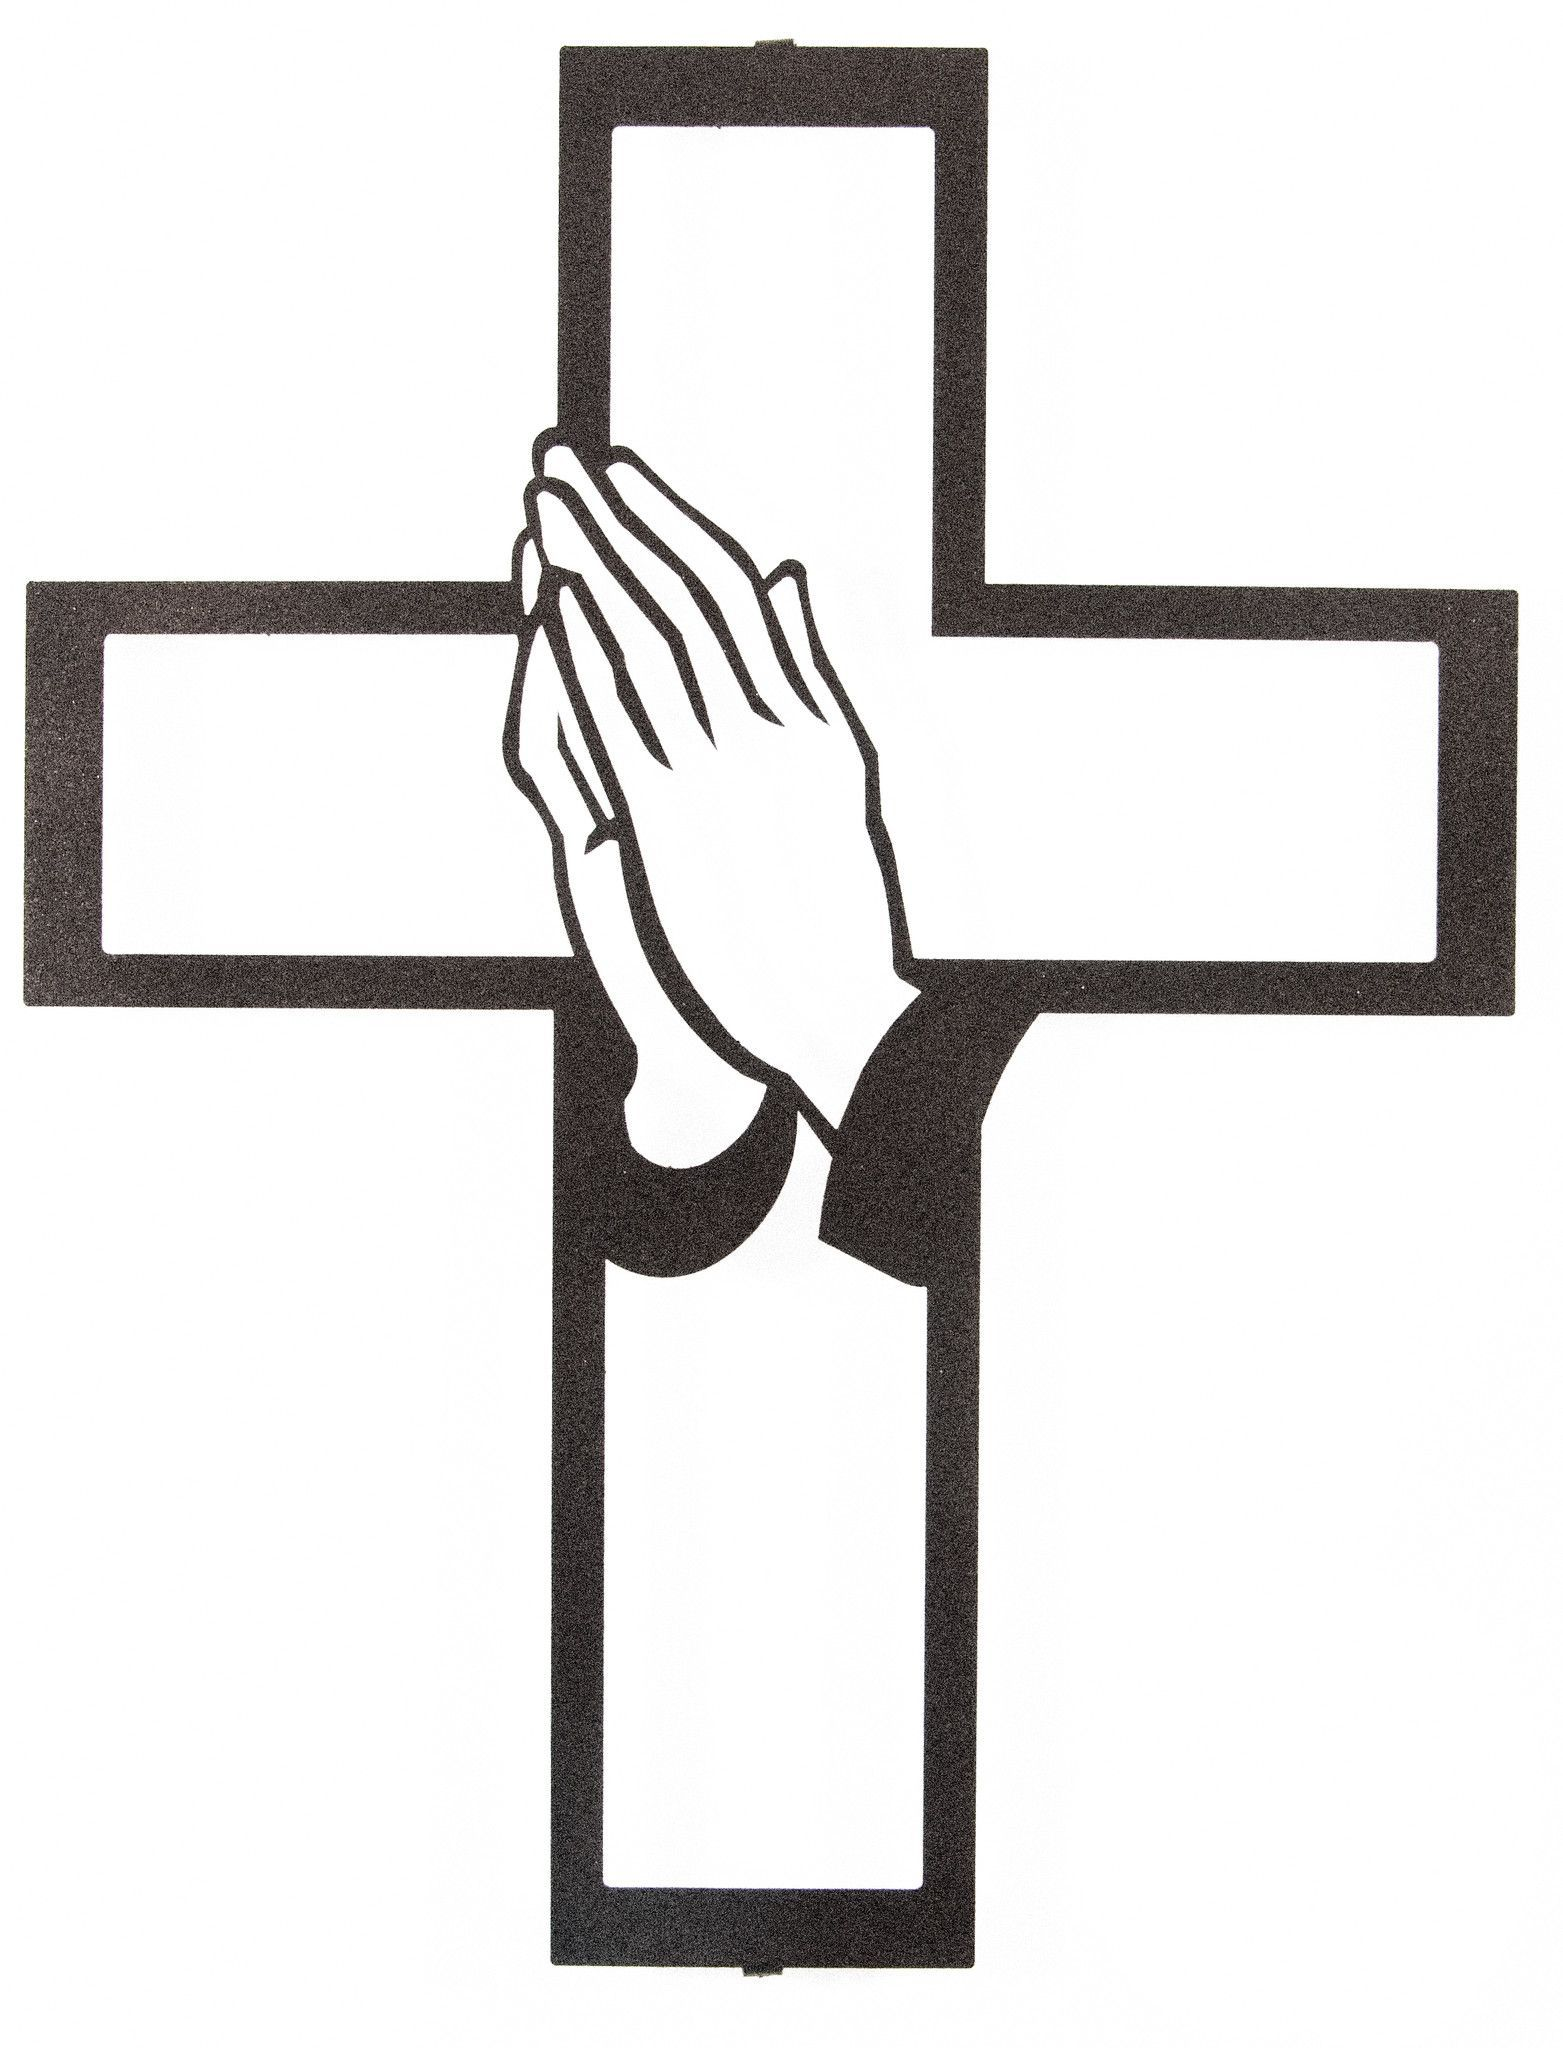 Praying Hands With Cross Silhouette.